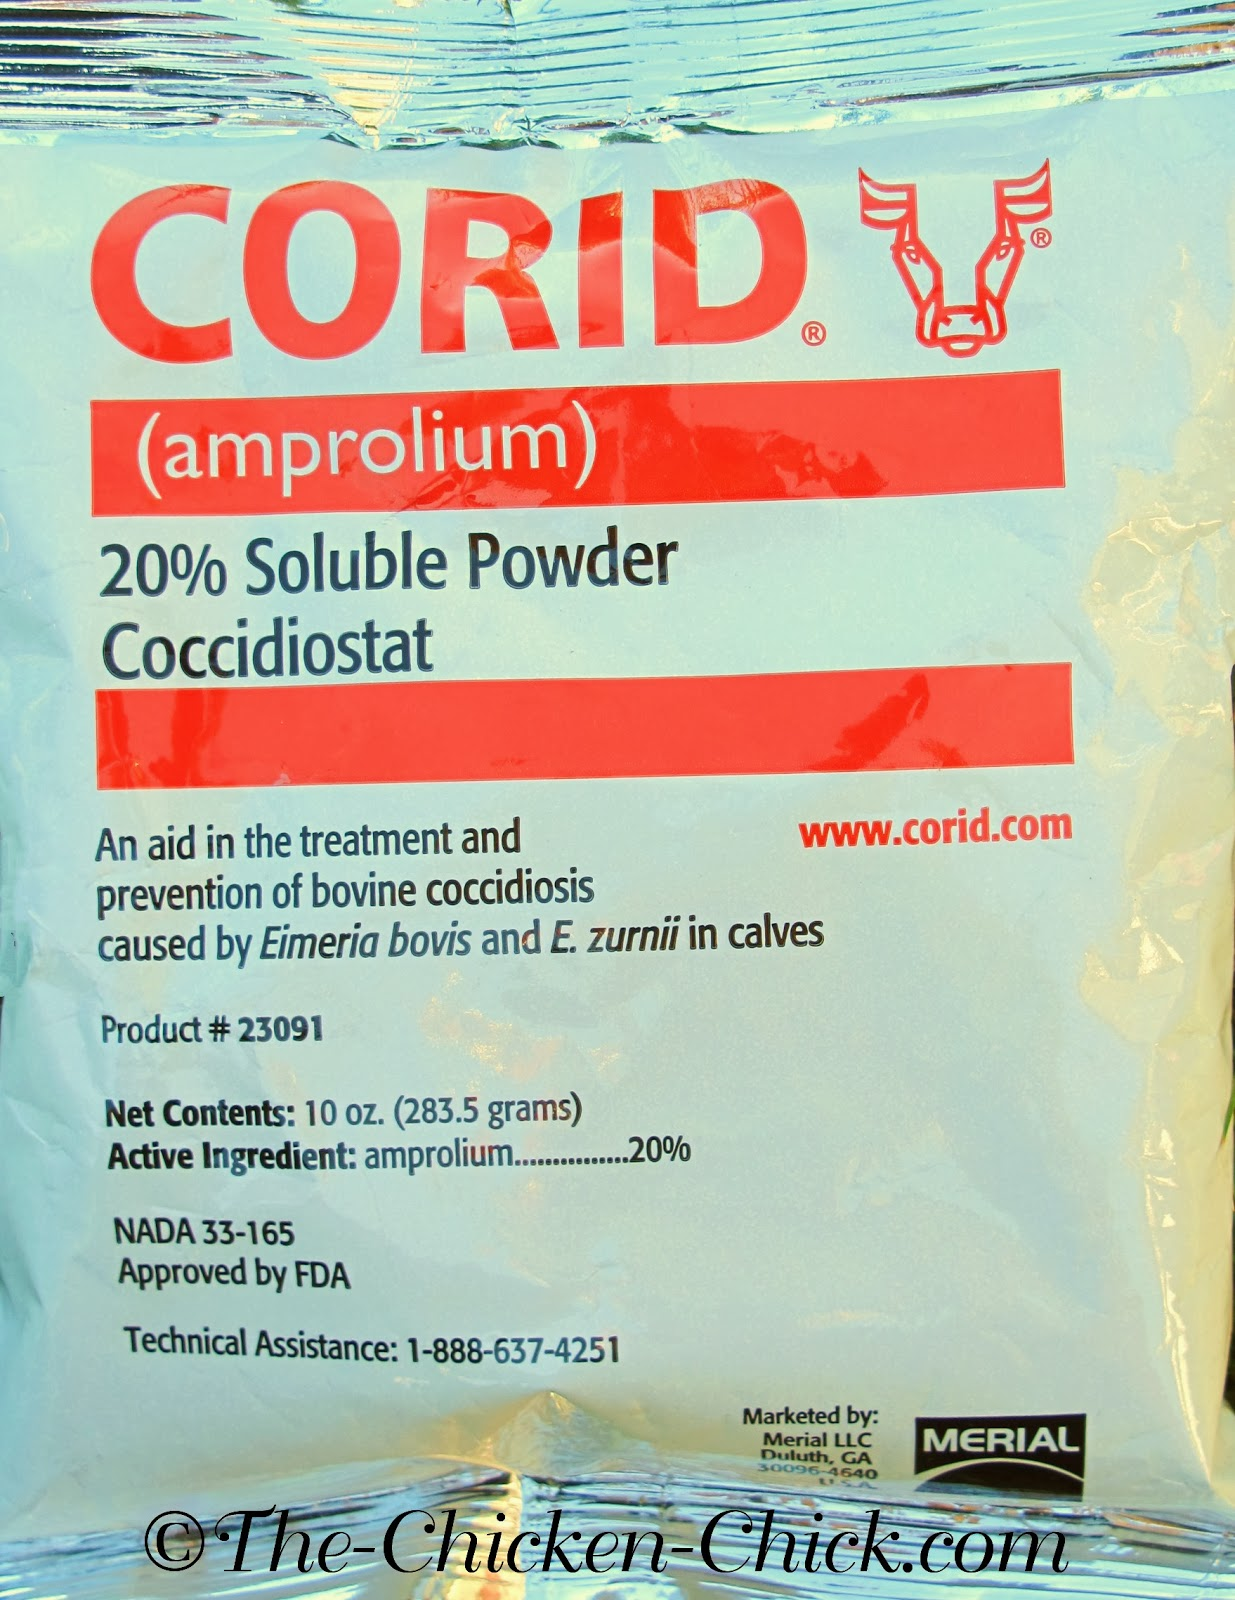 Corid, the name brand for Amprolium, is a commonly used treatment for coccidiosis in chicks and older chickens.